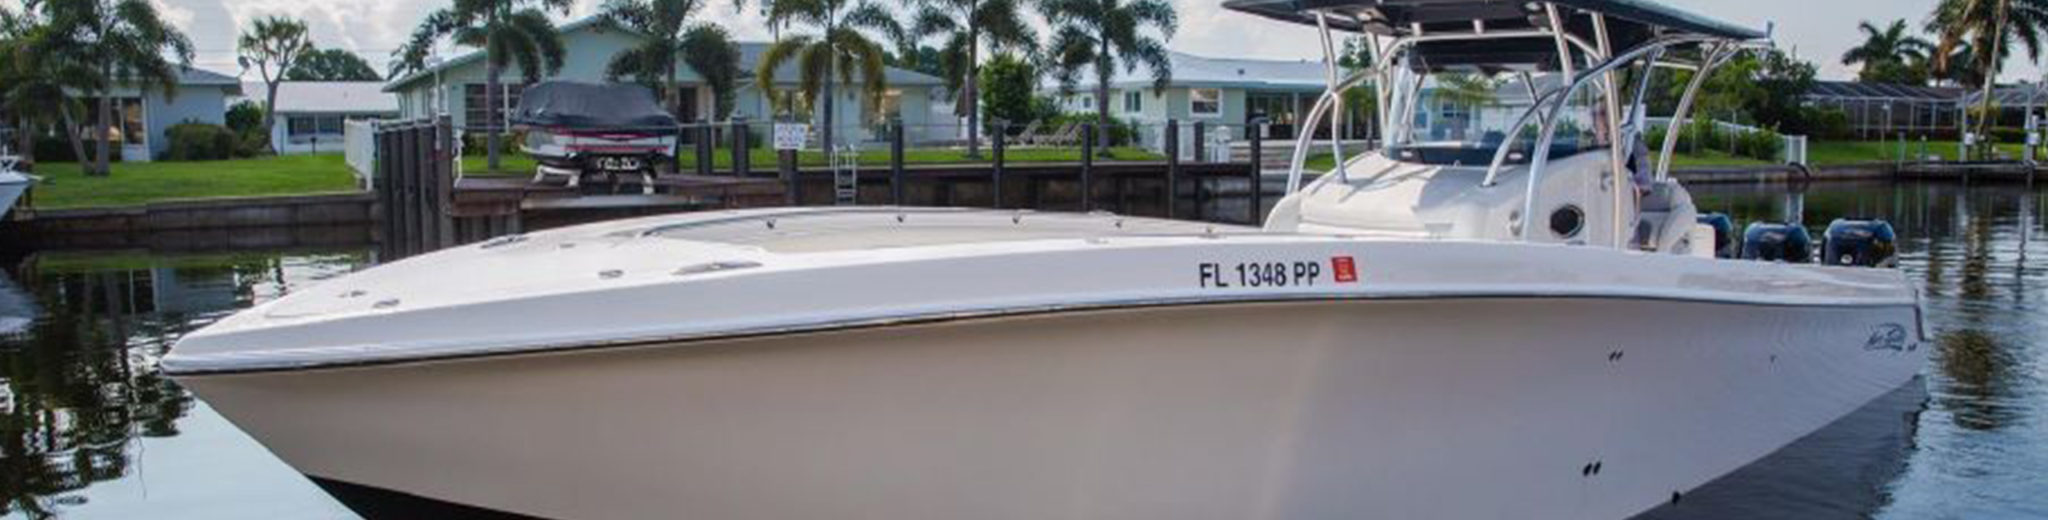 Used Boats for Sale Fort Myers